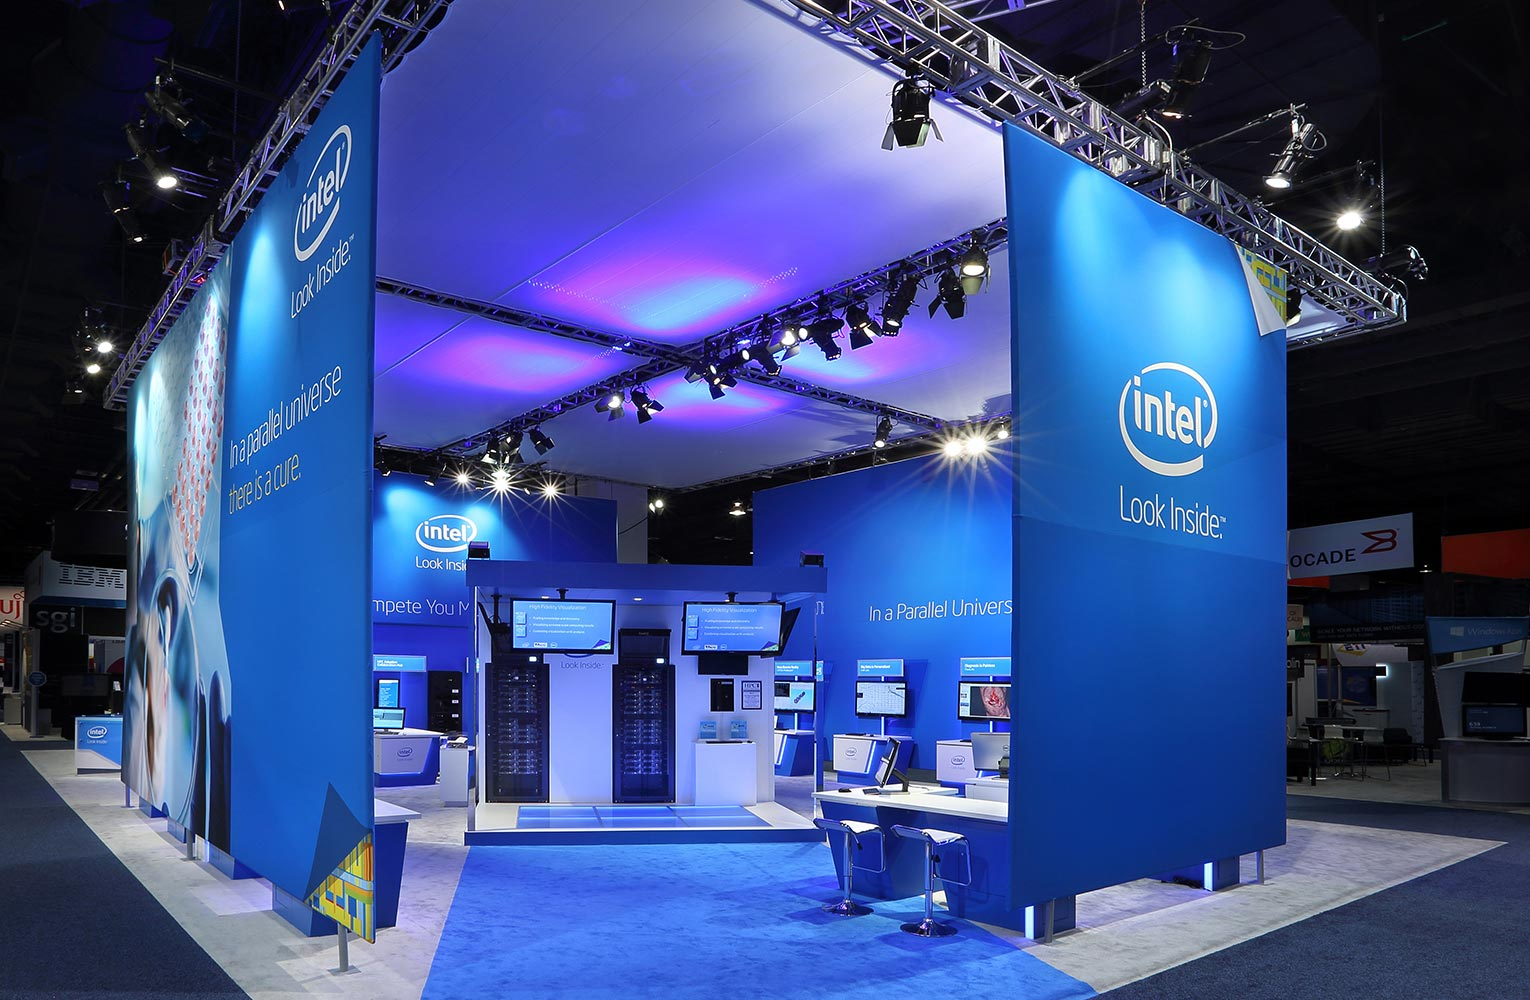 Intel Stand graphics and screen motion graphics